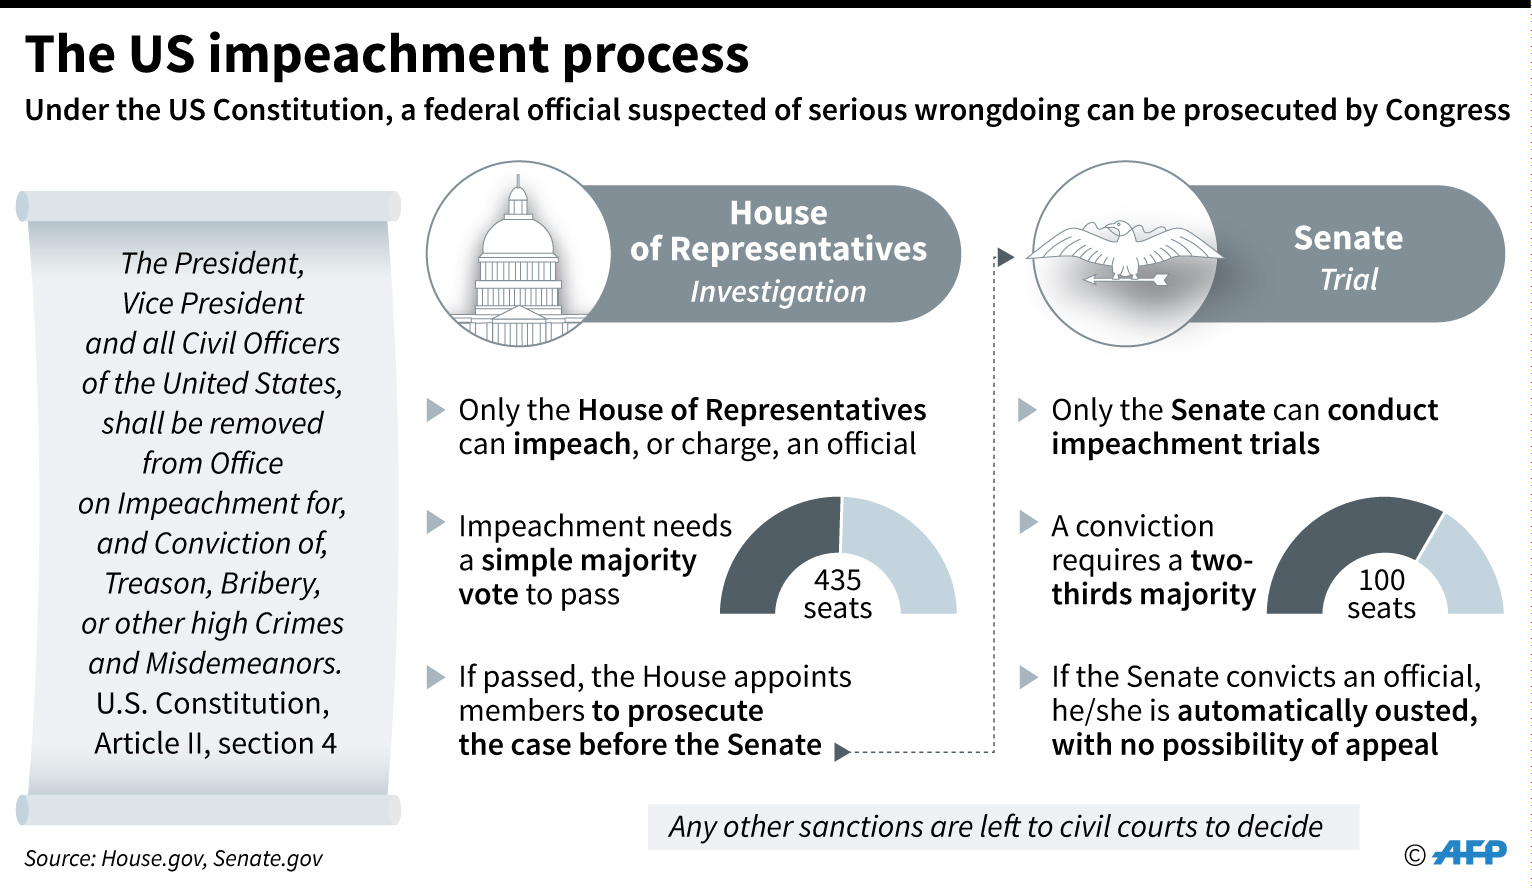 The steps required for the impeachment of a US president or other federal official.